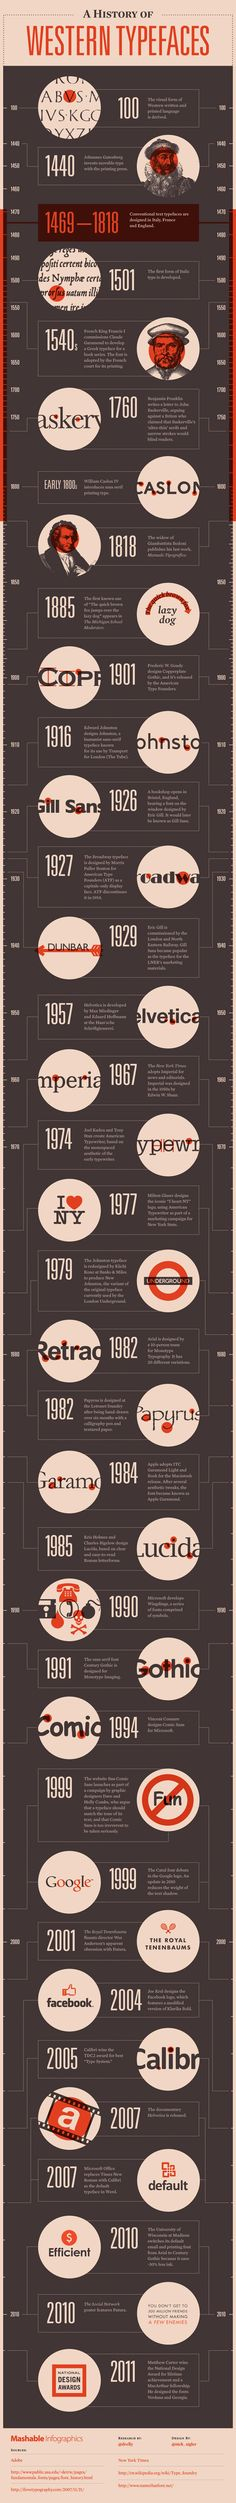 history of modern typefaces